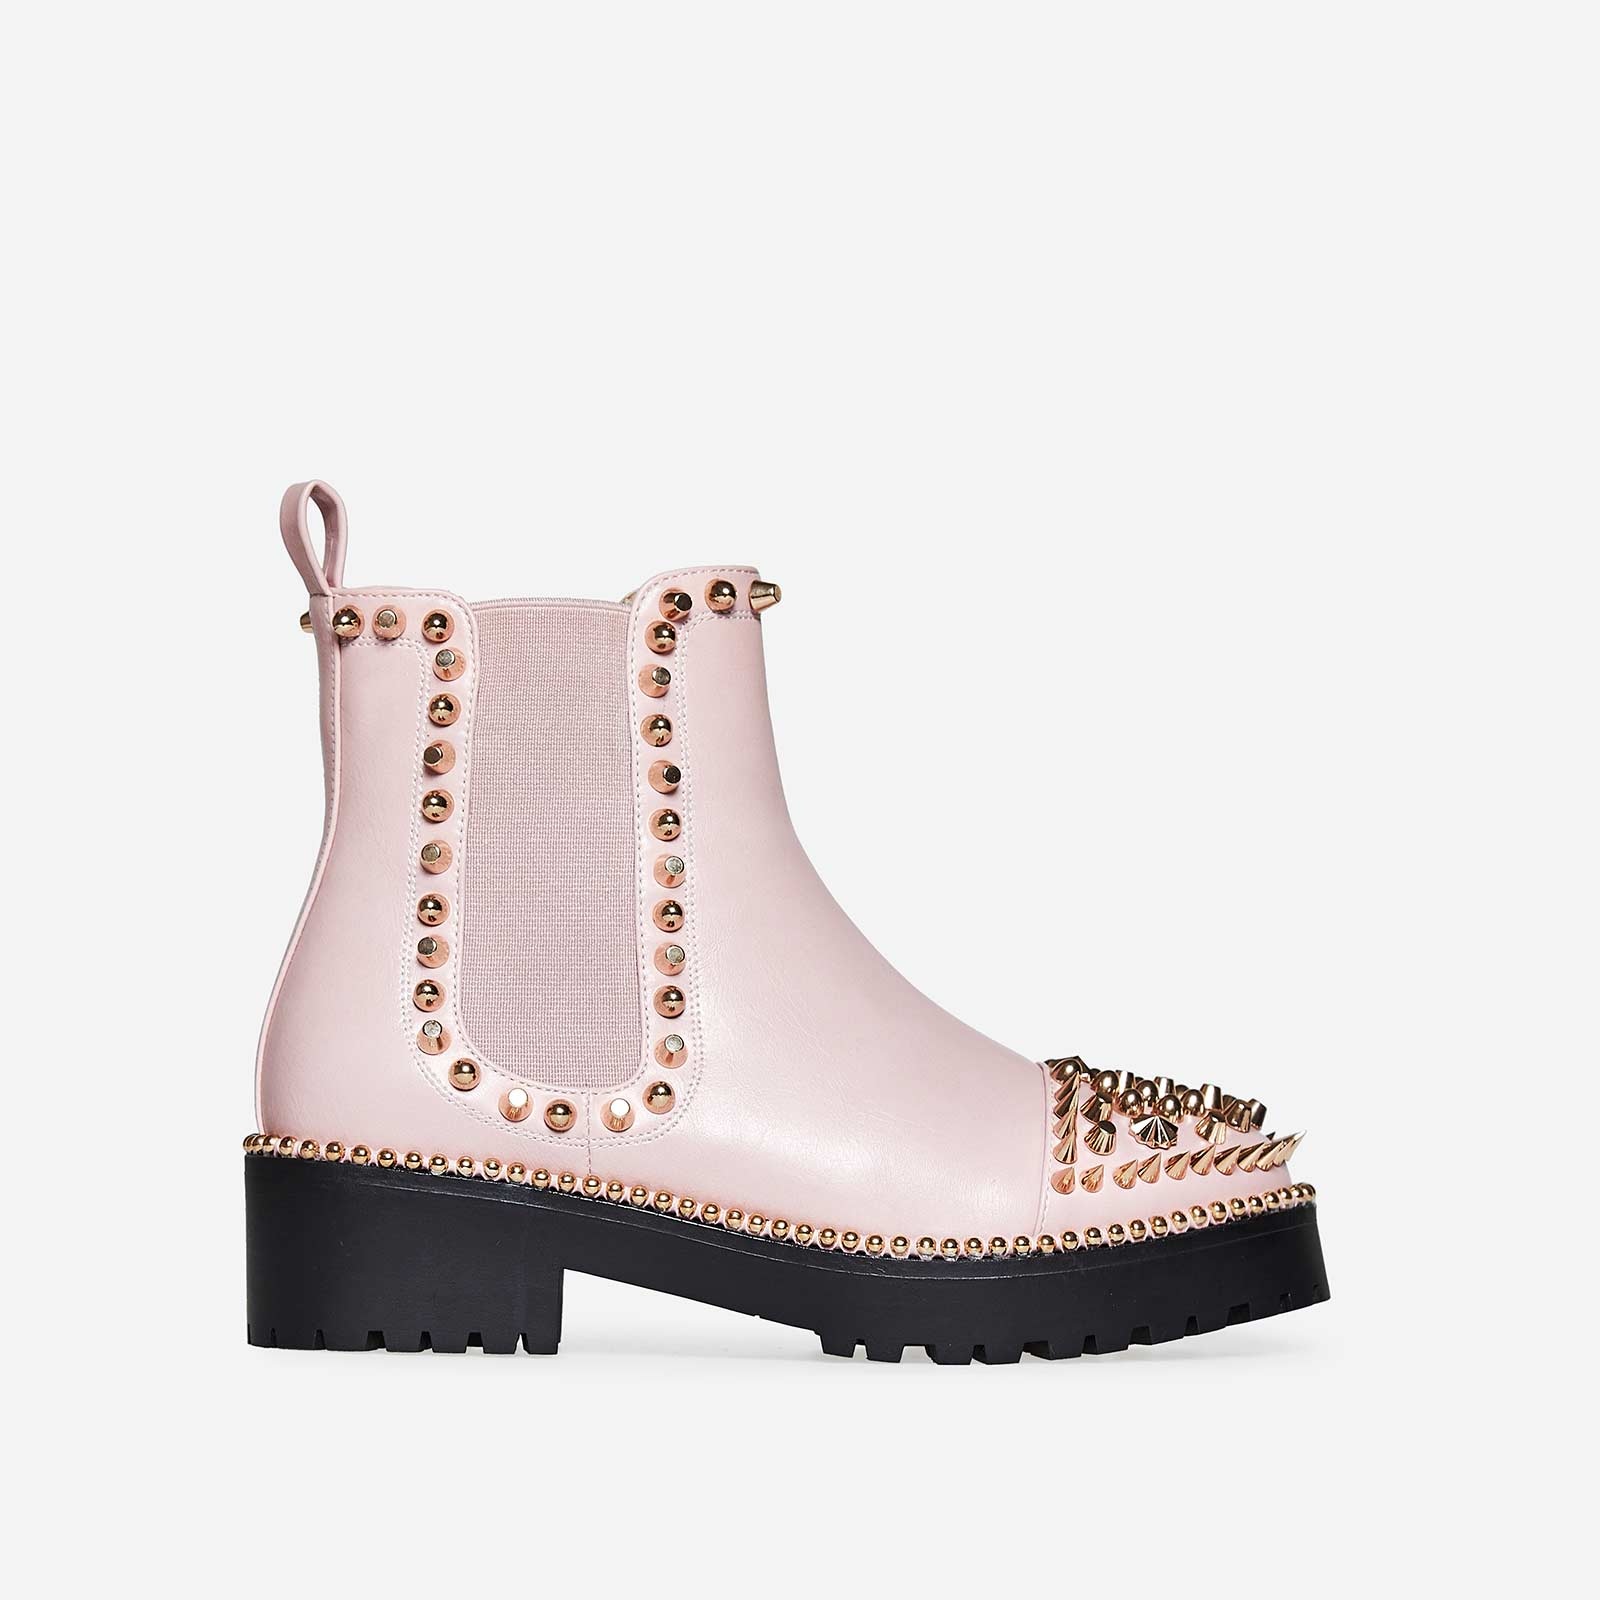 Jack Gold Studded Detail Biker Boot In Pink Faux Leather